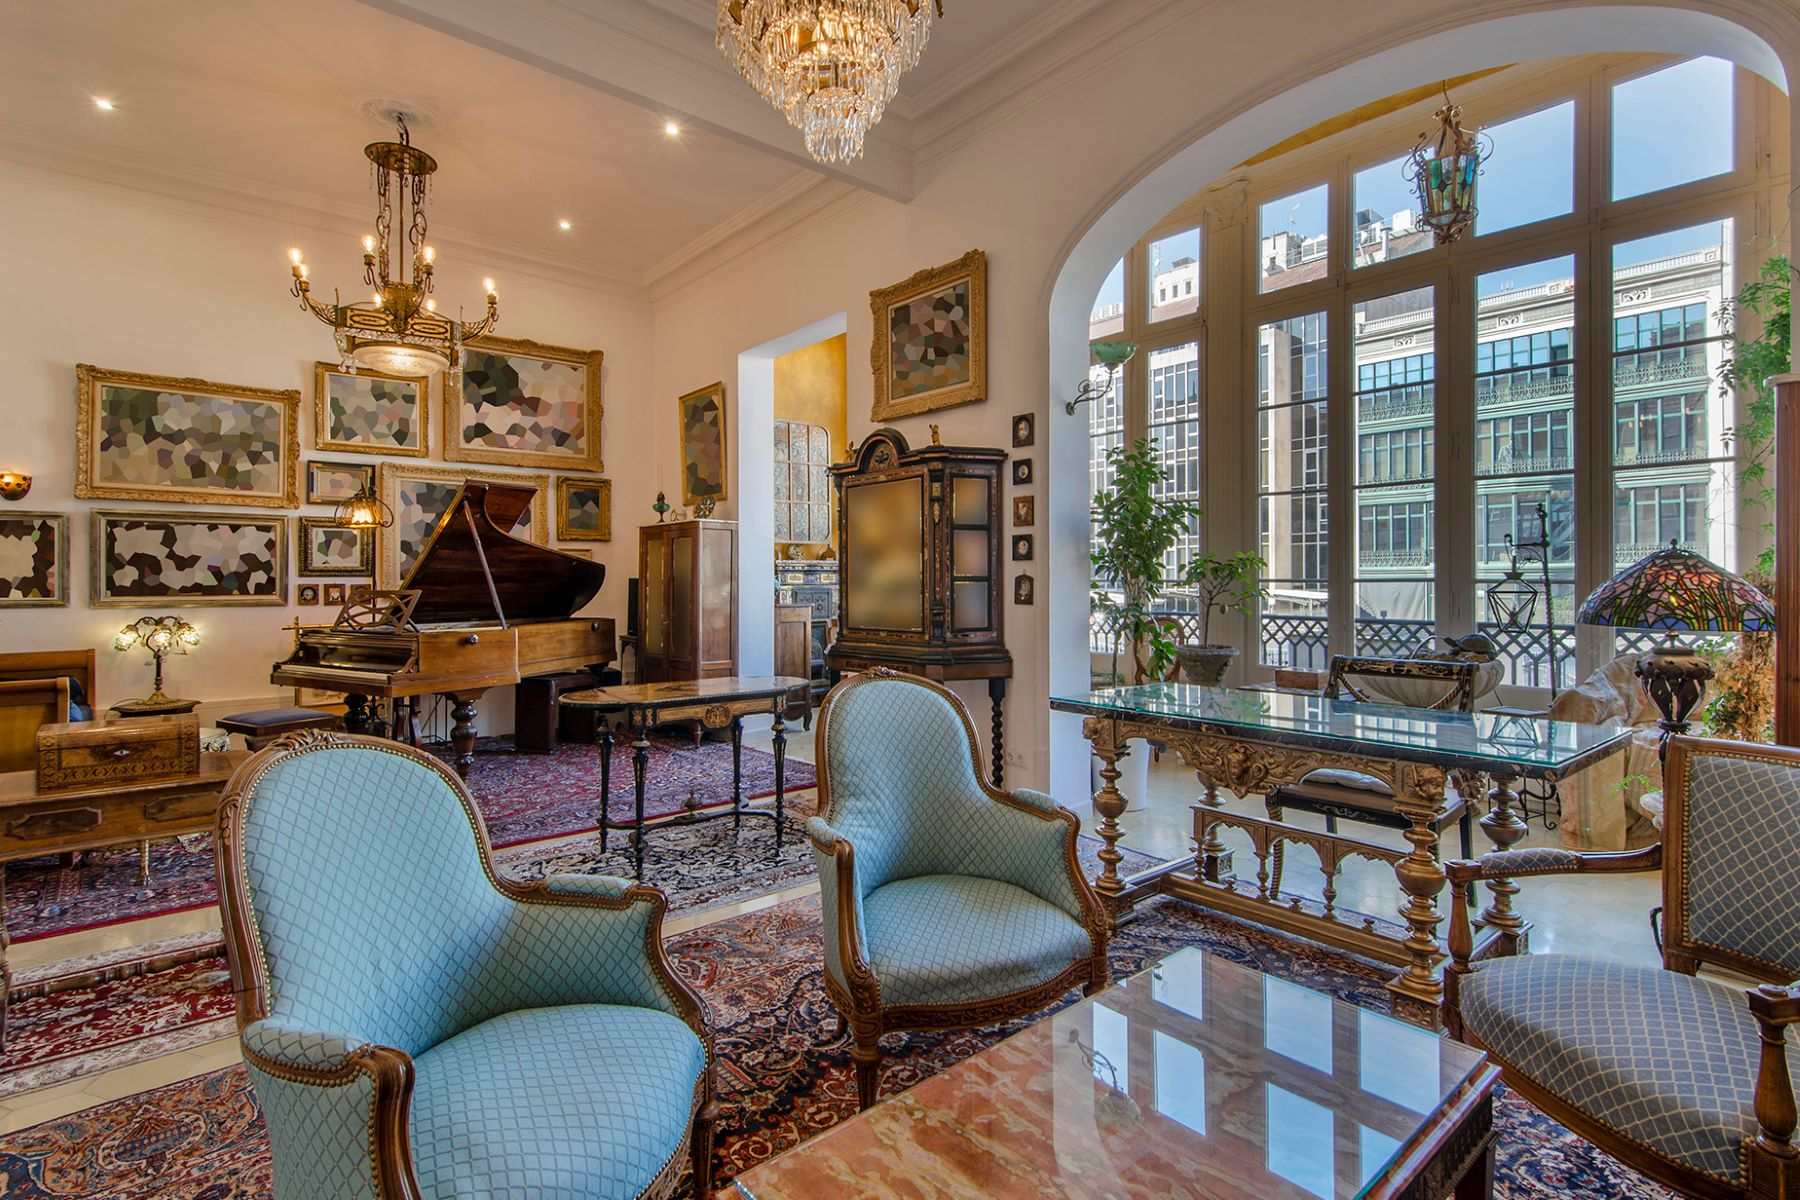 Căn hộ vì Bán tại Exquisite Renovated Apartment in a Classic Building in L'Eixample Dret, Barc ... Barcelona City, Barcelona, 08007 Tây Ban Nha